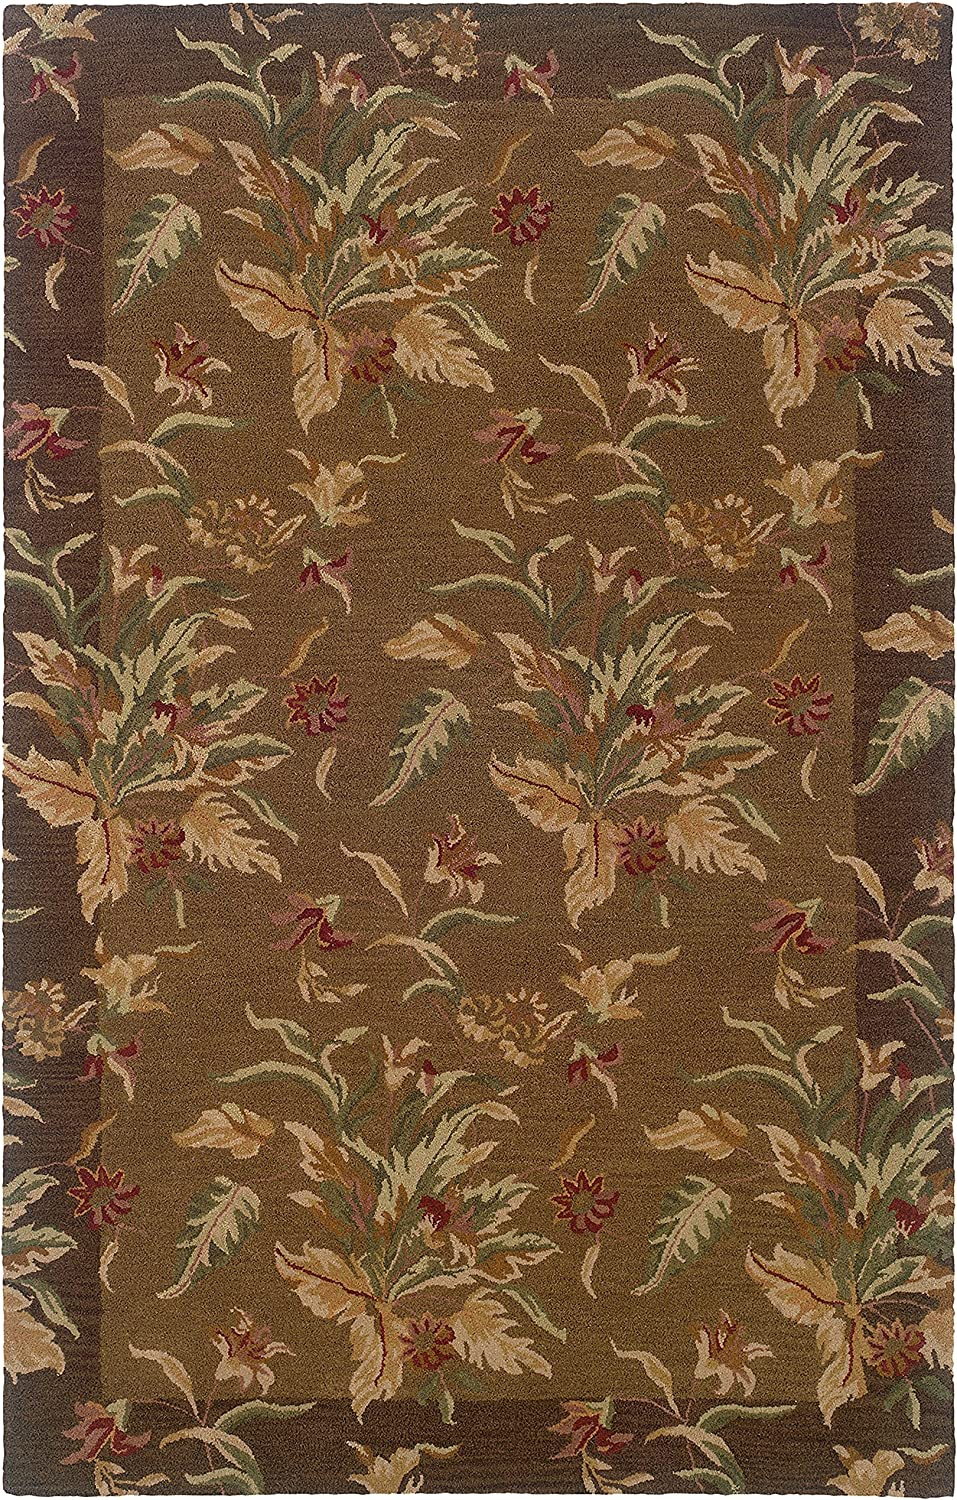 Animer and price revision Oriental Weavers WINDSOR 23101 Beige 3'6 Rug Rapid rise Rectangle Han 5'6 x